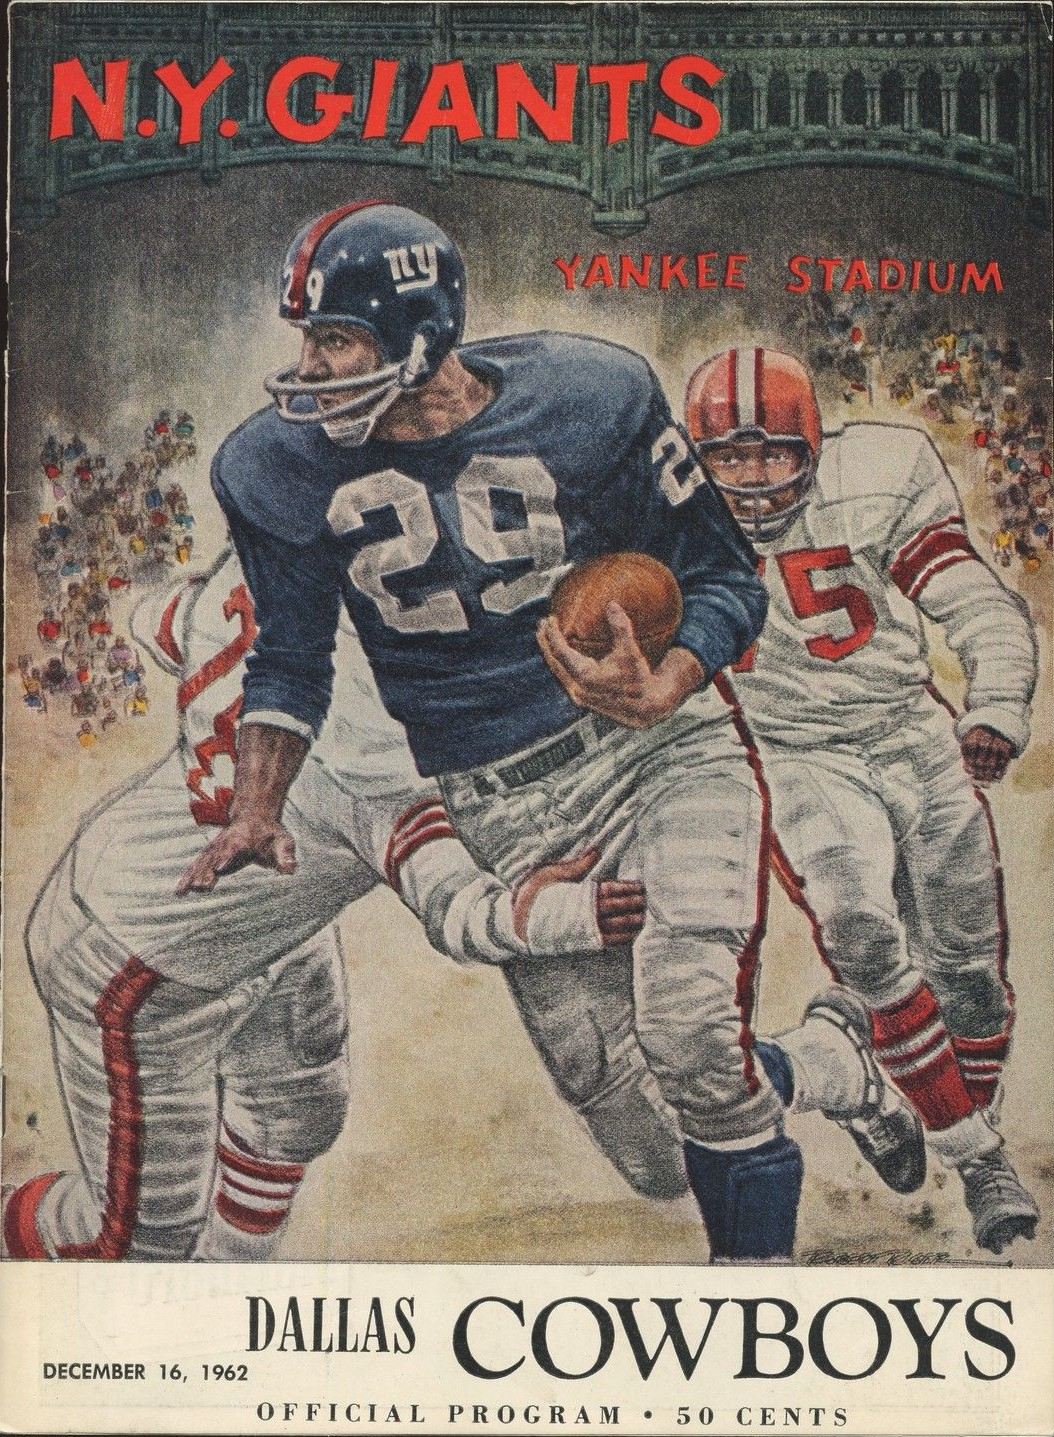 New York Giants Game Program (December 16, 1962)